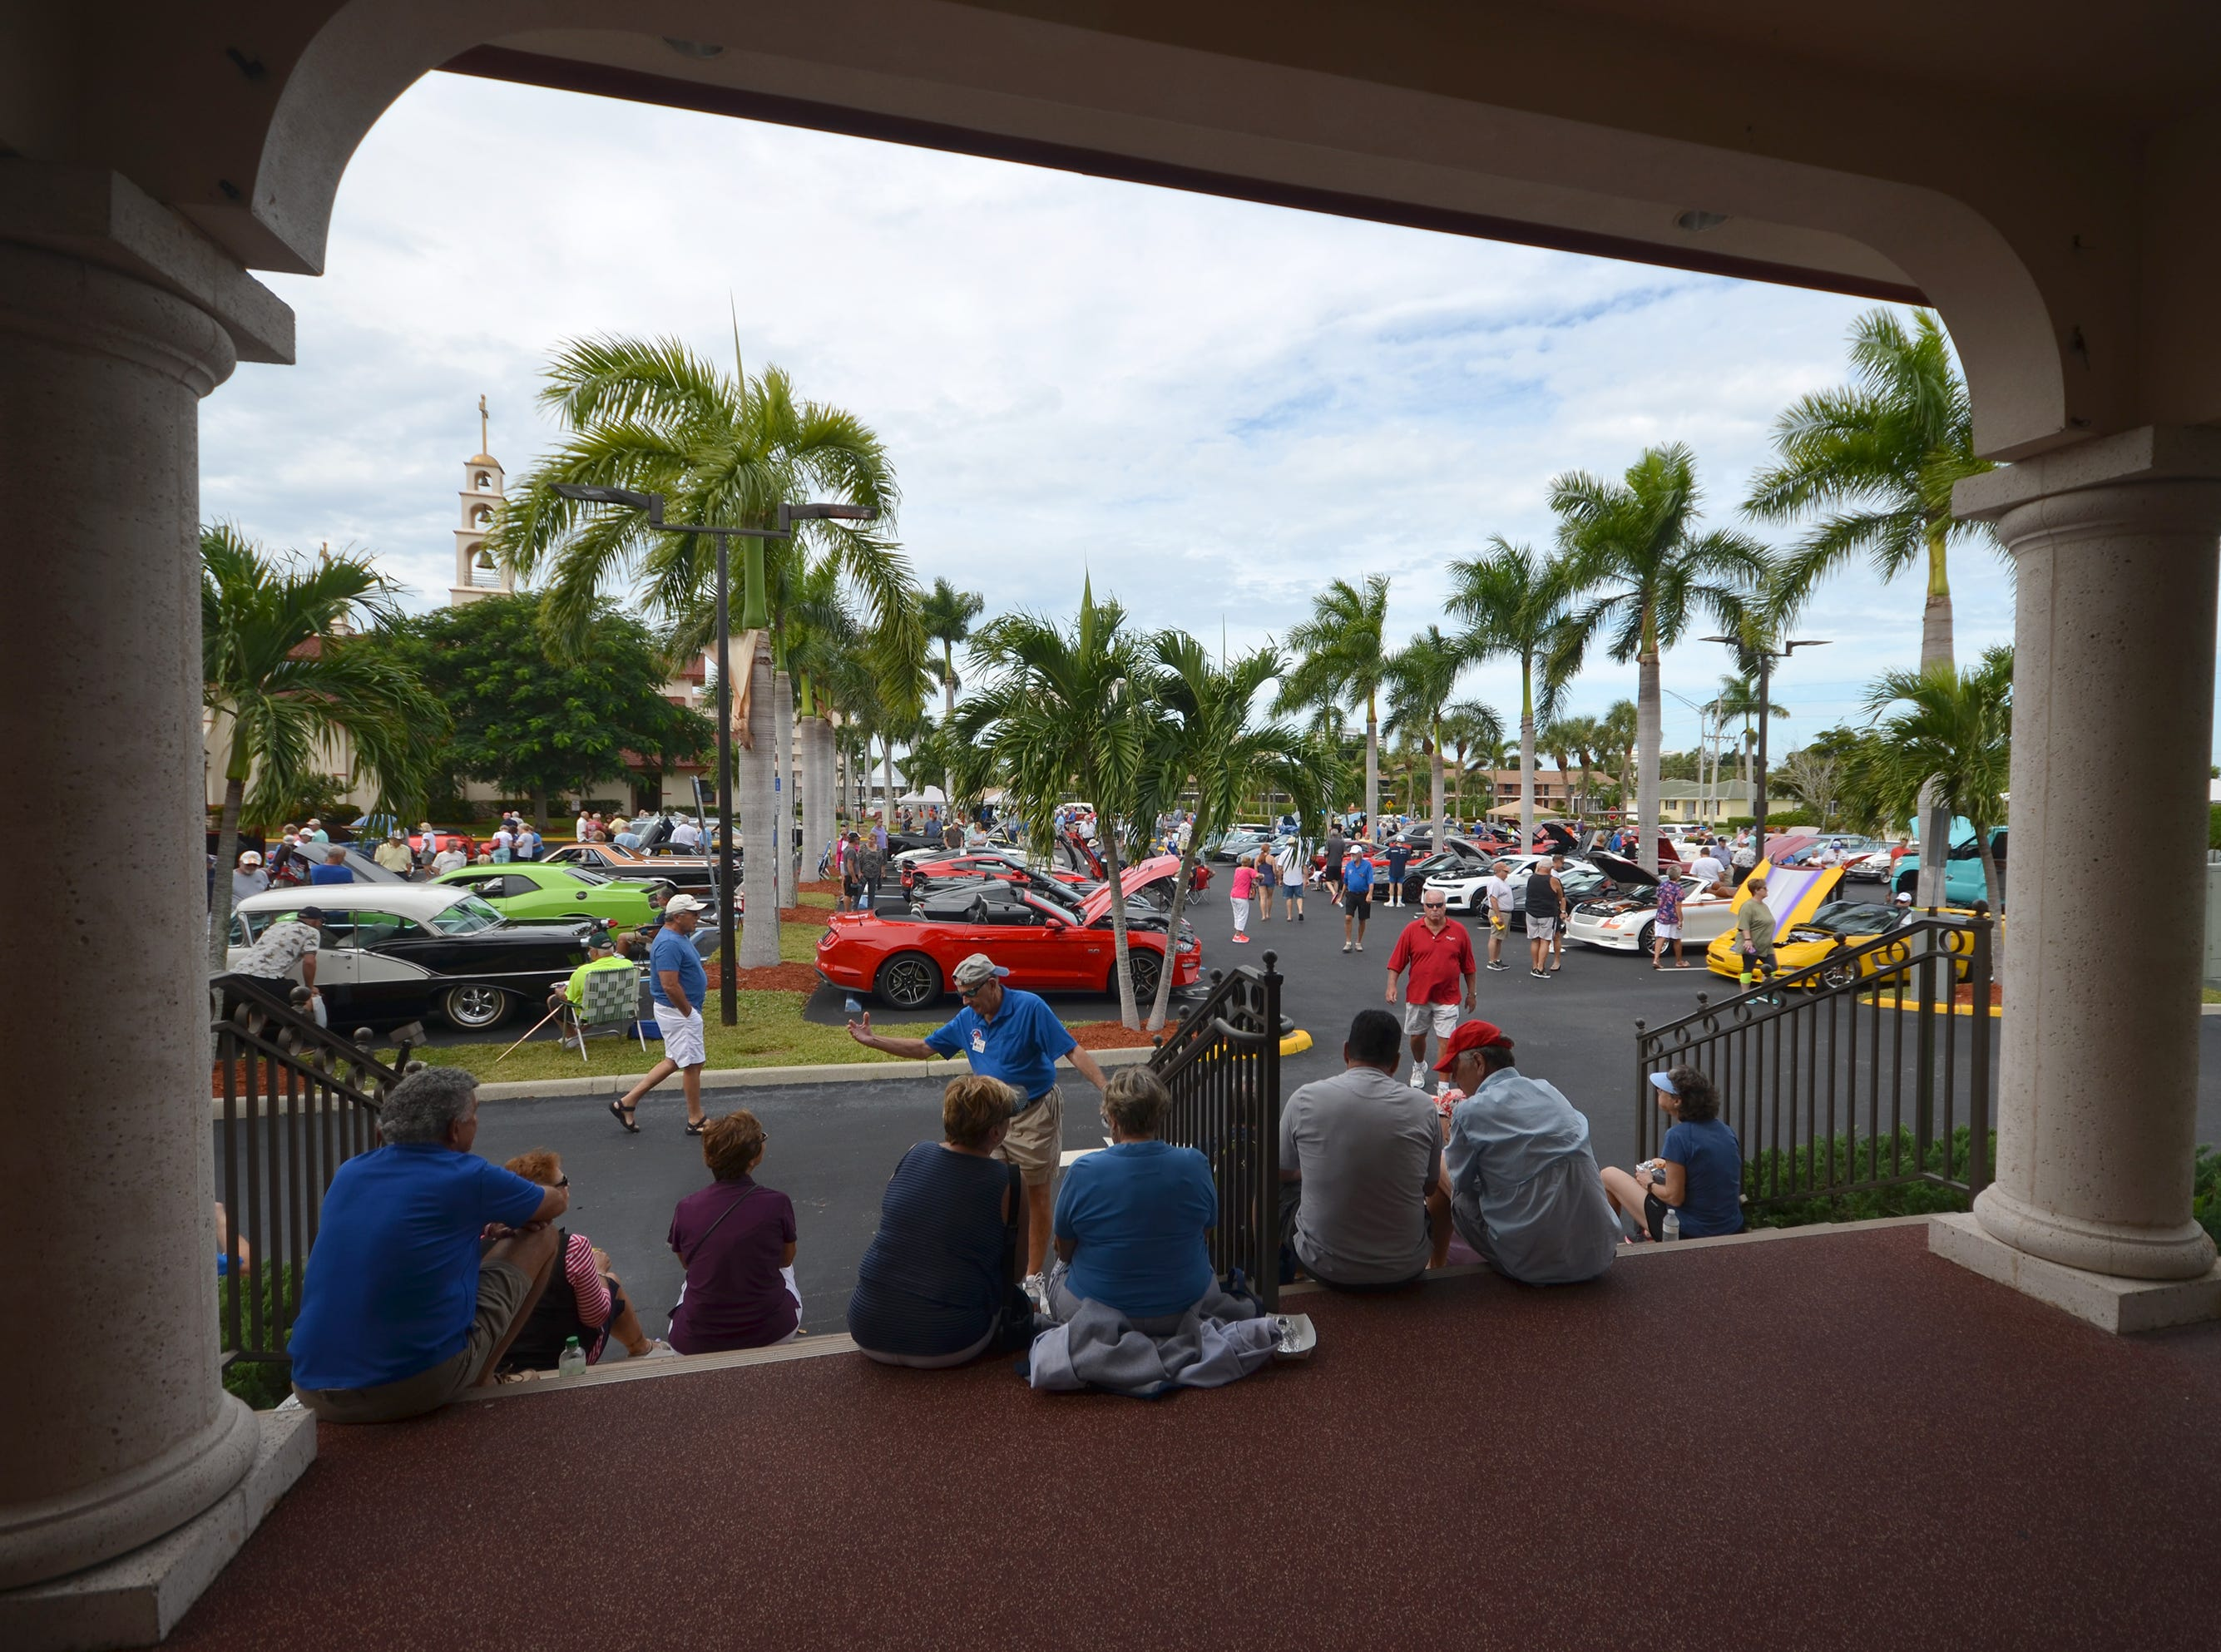 The Marco Island Knights of Columbus inaugural car show, Saturday in the parking lot at San Marco Catholic Church, had something for everybody.